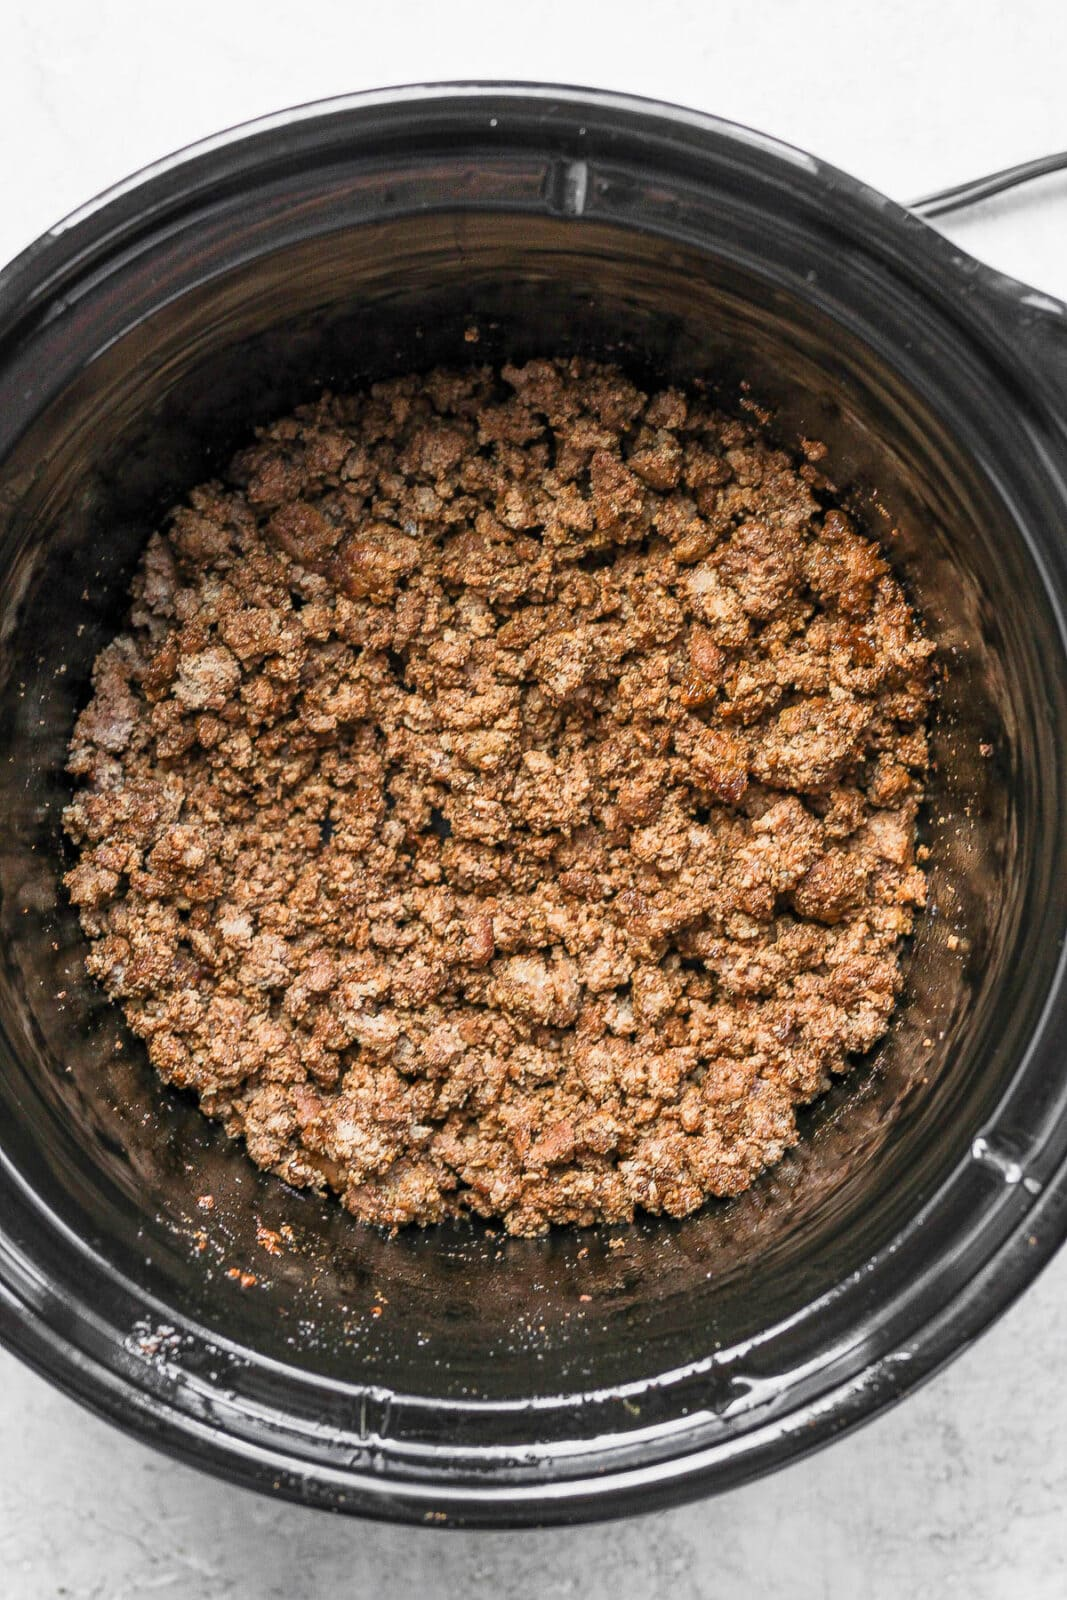 Crockpot with cooked taco meat.